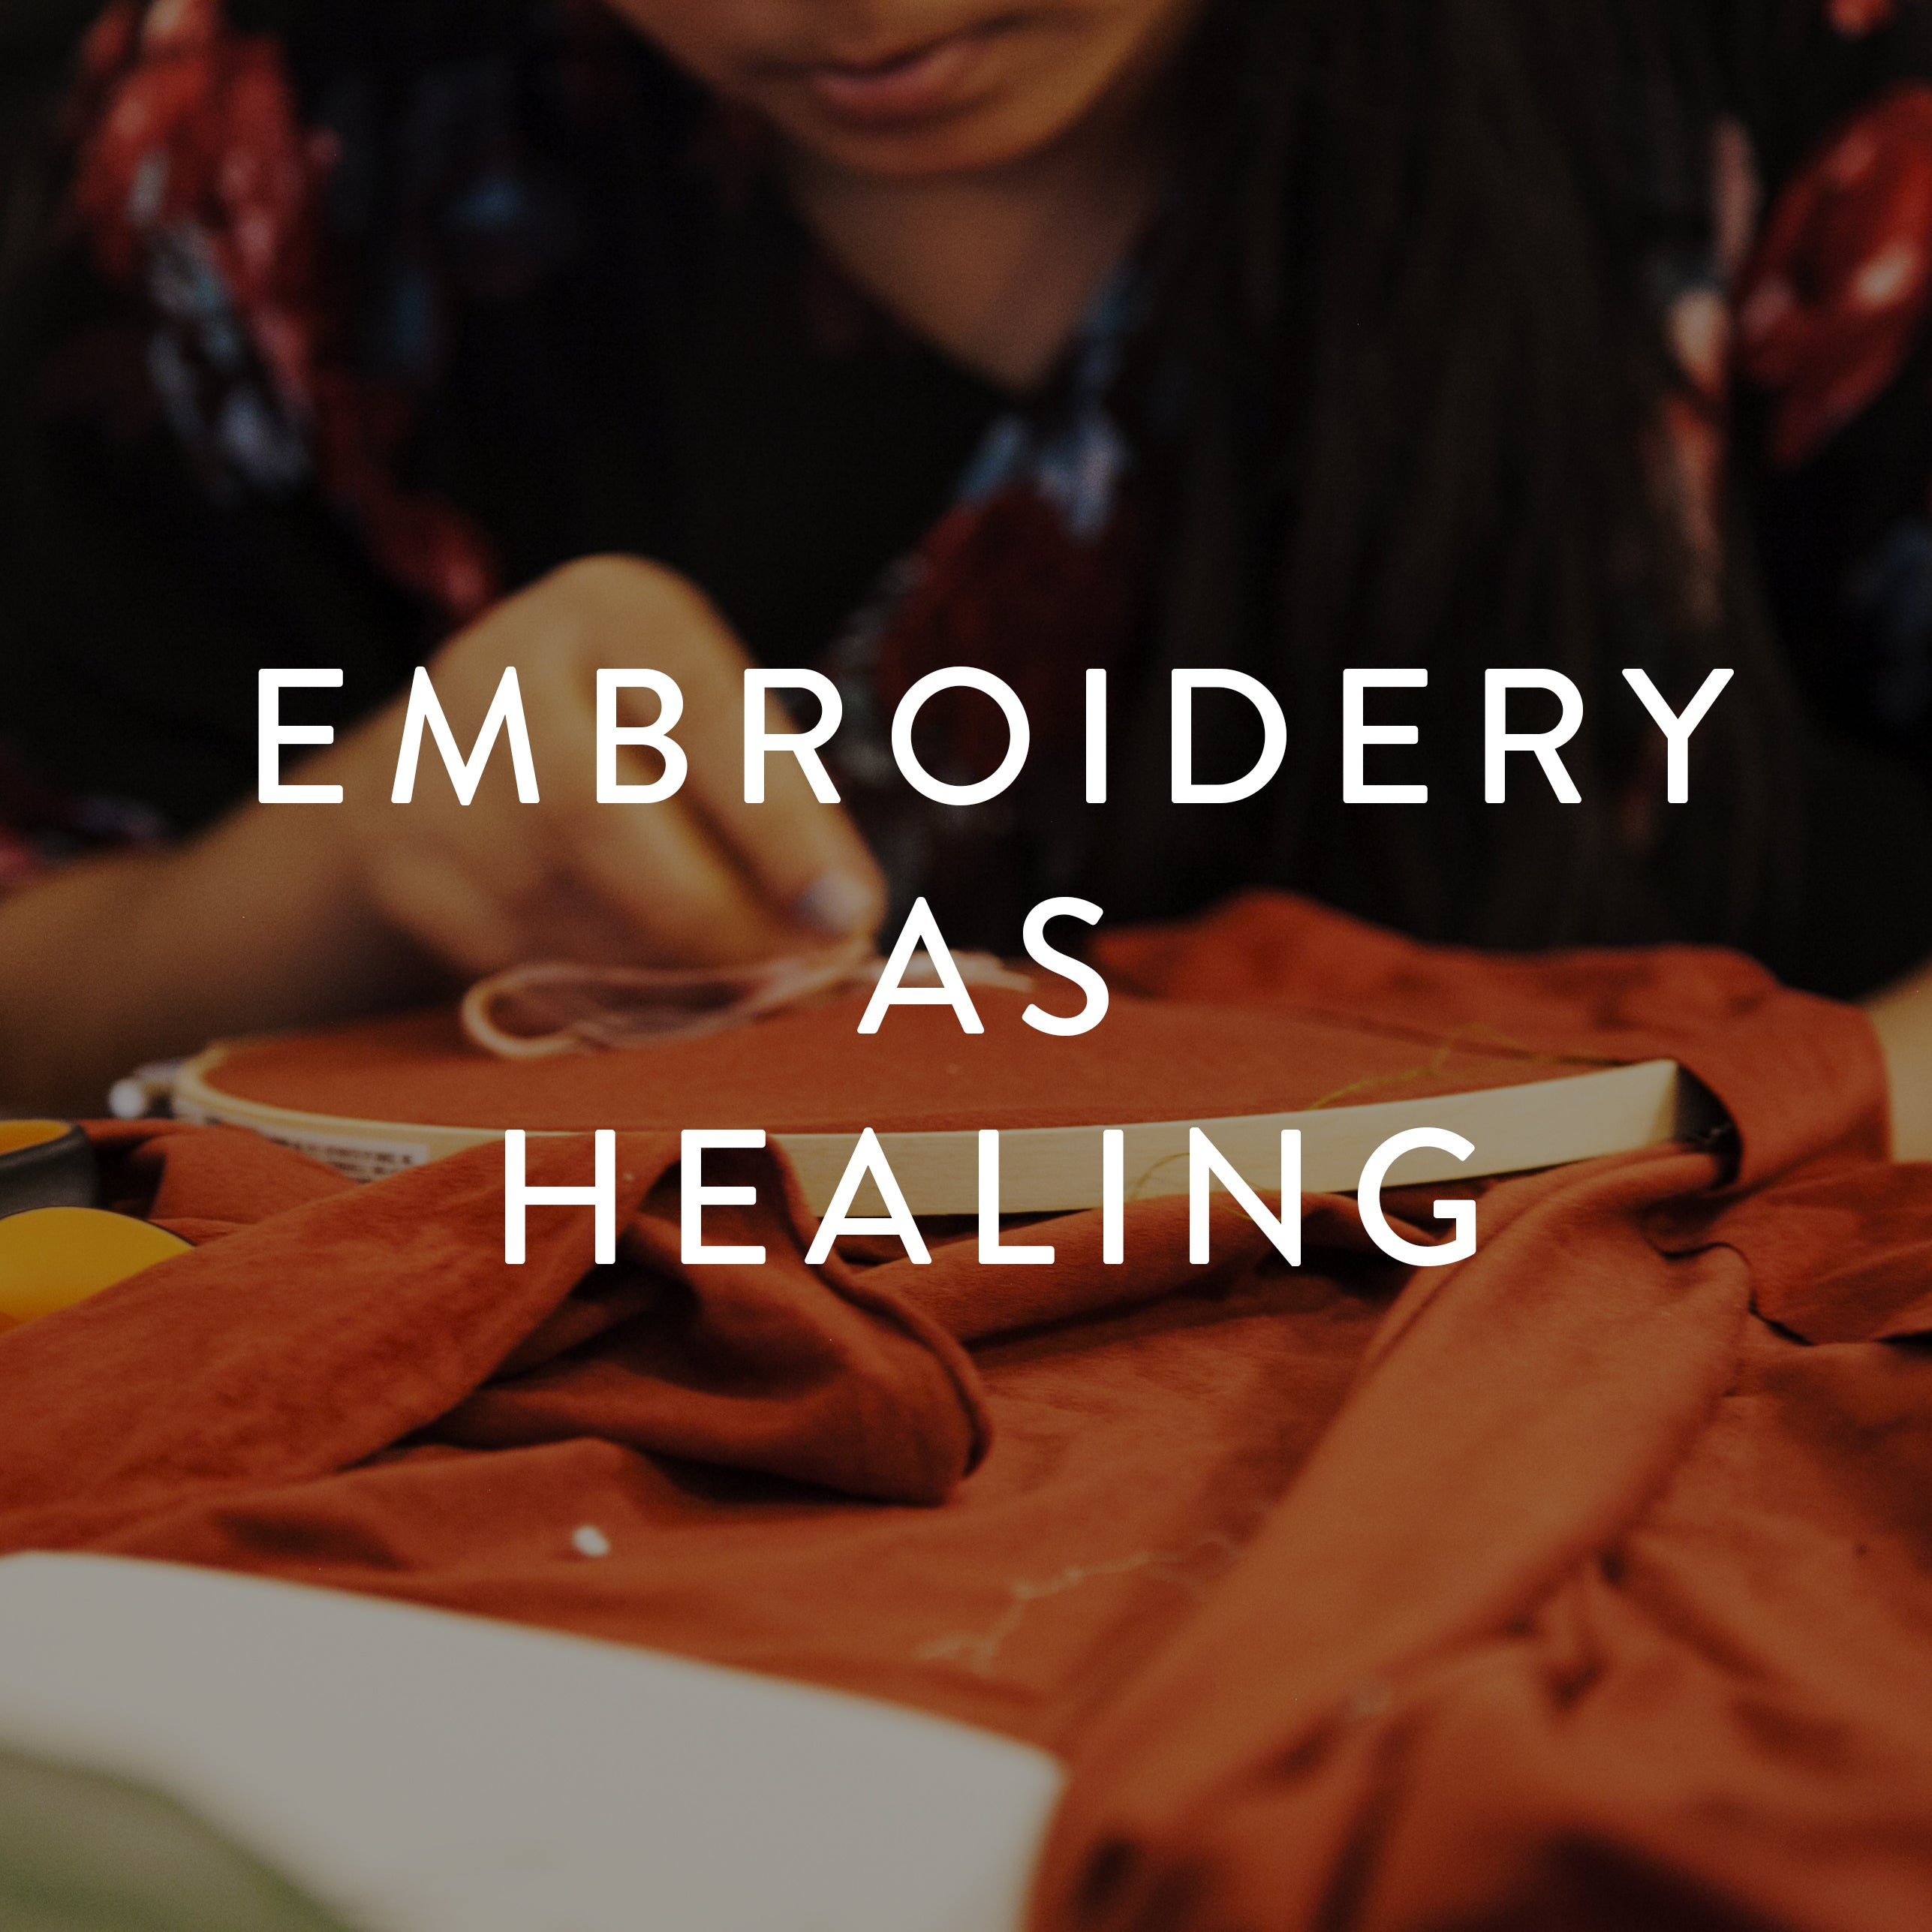 Monday, July 15th -- Embroidery as Healing